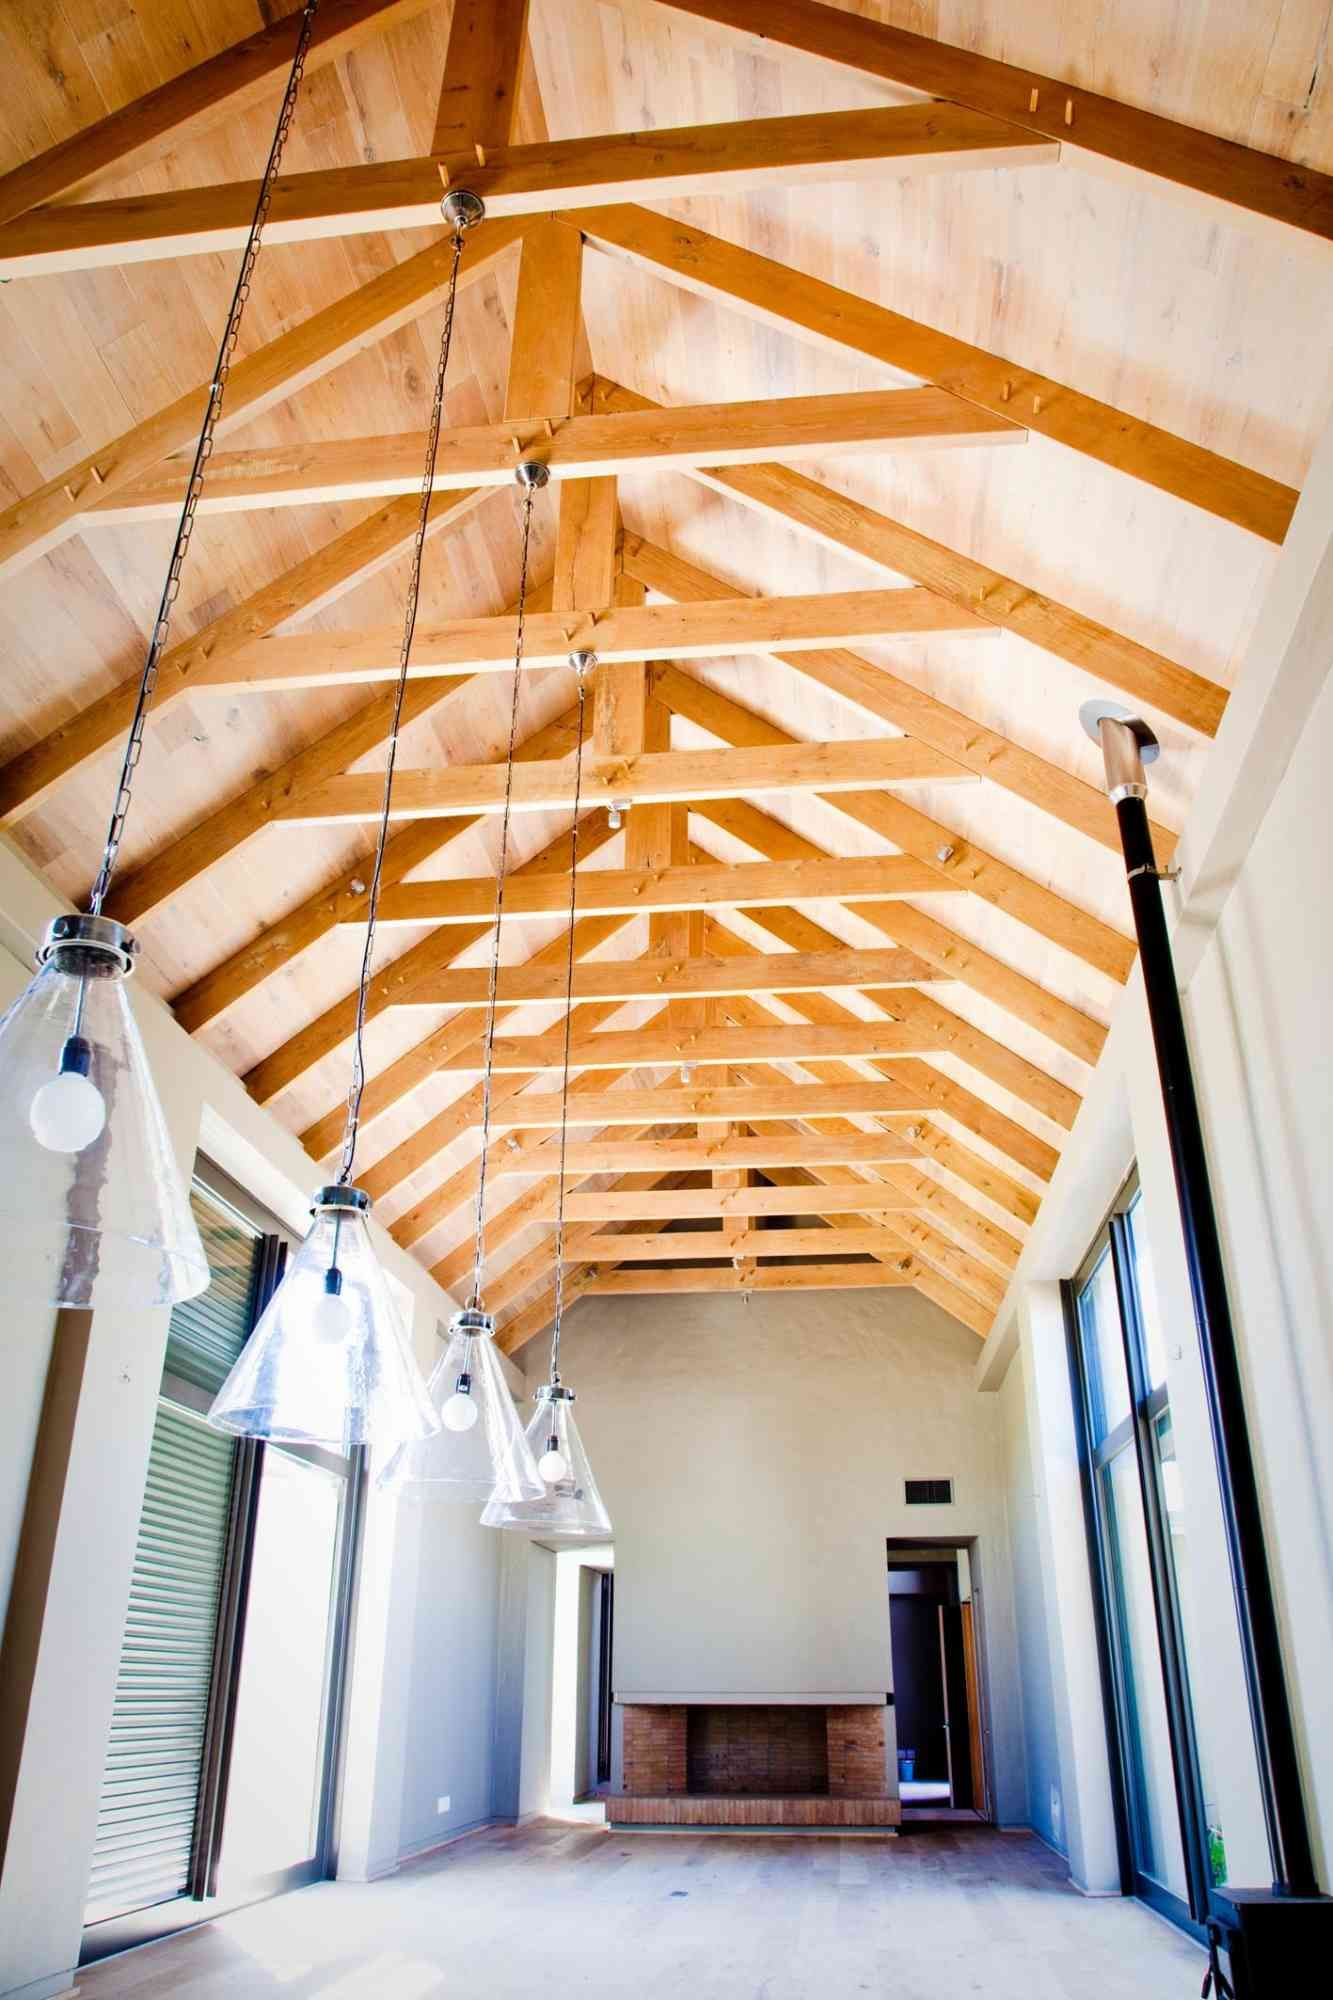 Exposed Roofing Exposed Rafters Modern Home Interior Design Contemporary House Design